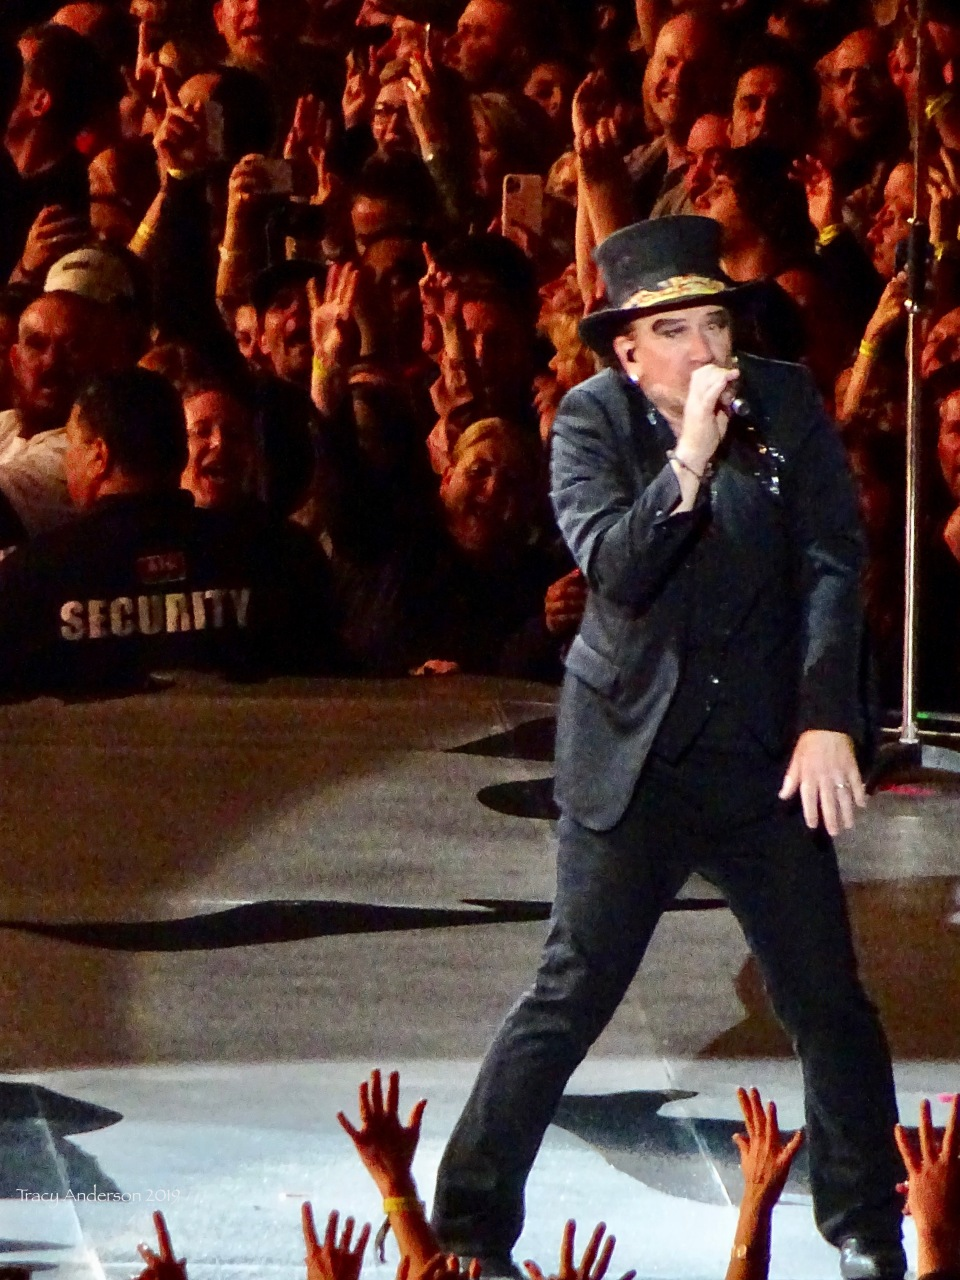 Bono as Macphisto U2 The Joshua Tree Tour Melbourne November 15, 2019